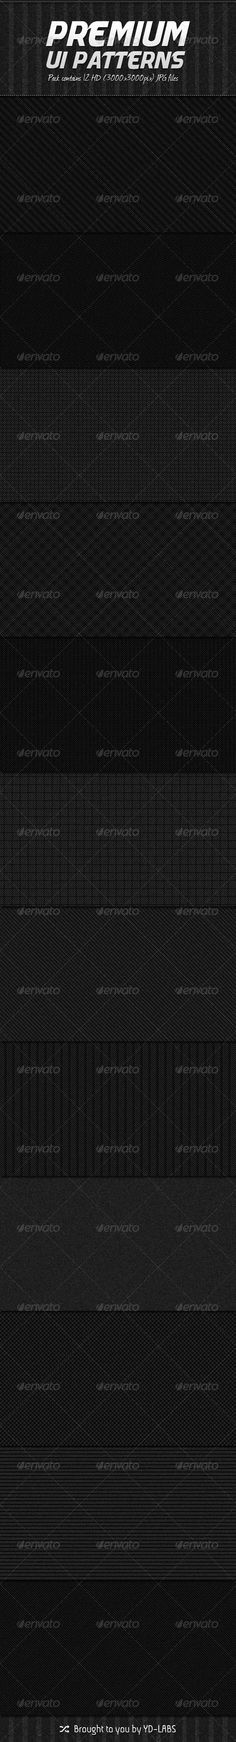 Item ¨C 12 Premium Patterns Files included ¨C 12 High Resolution JPG files For Other items please check o Mobile Ui Patterns, Web Patterns, Background S, Background Patterns, Club Flyers, Stencil Templates, Textured Wallpaper, Pattern Design, Web Design